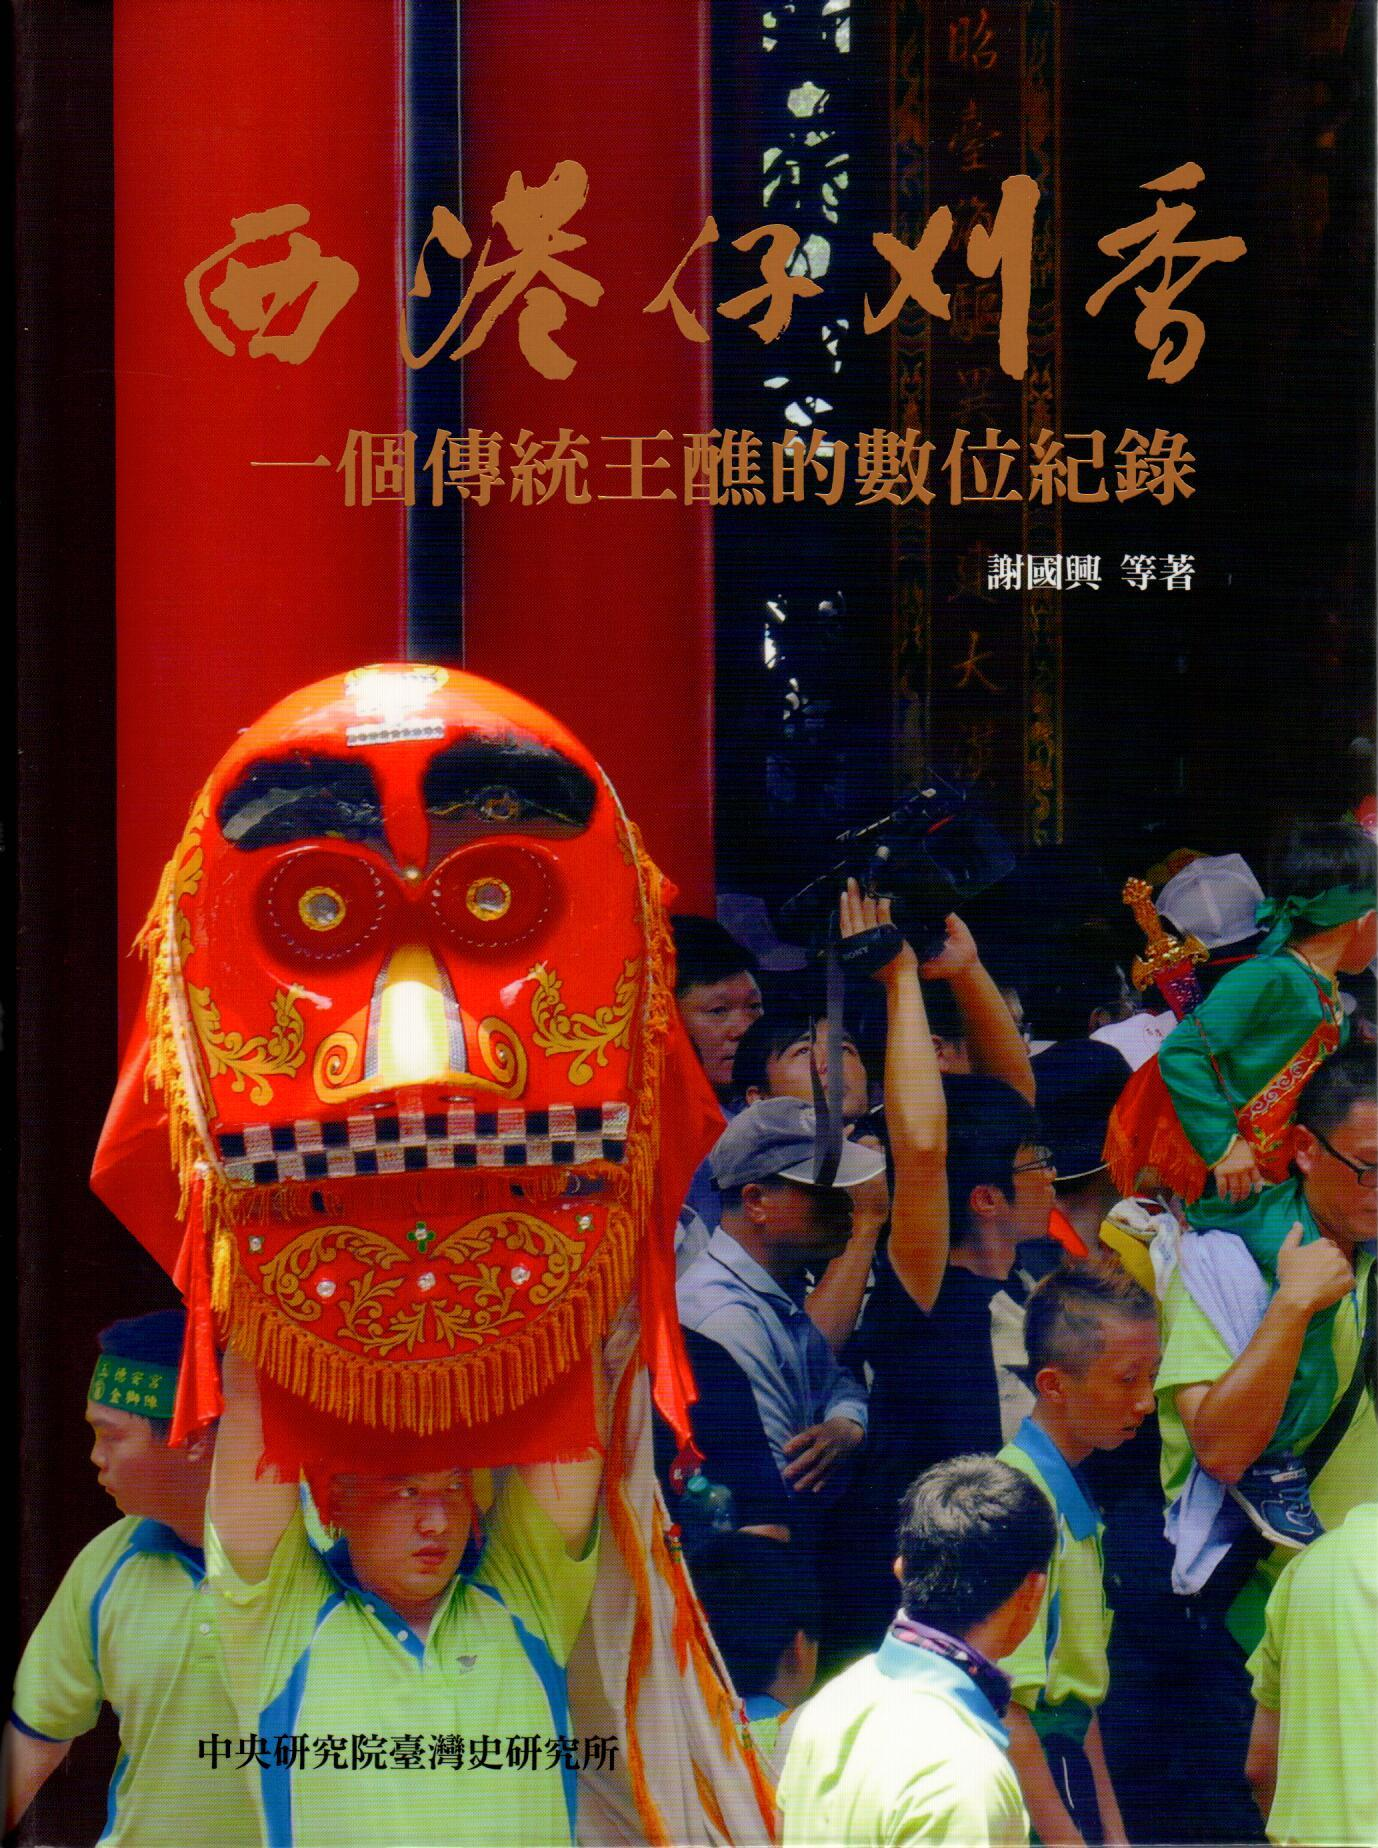 Sai-káng-á kuah-hiunn: Digital documentaries of a traditional Taiwanese religious festival in the Hsikang area, Taiwan (with DVDs)